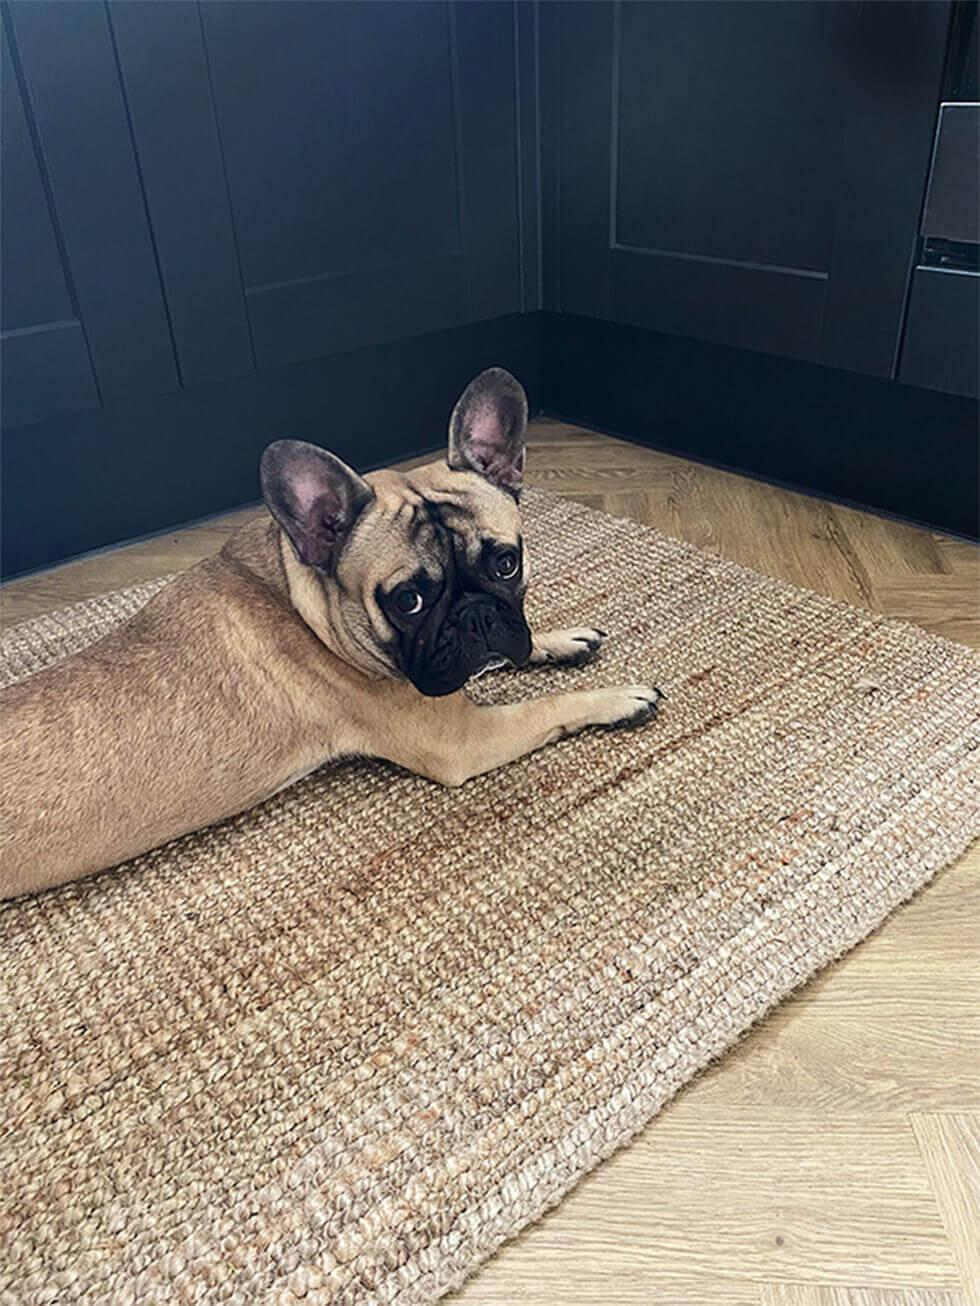 French bulldog relaxing on a rug